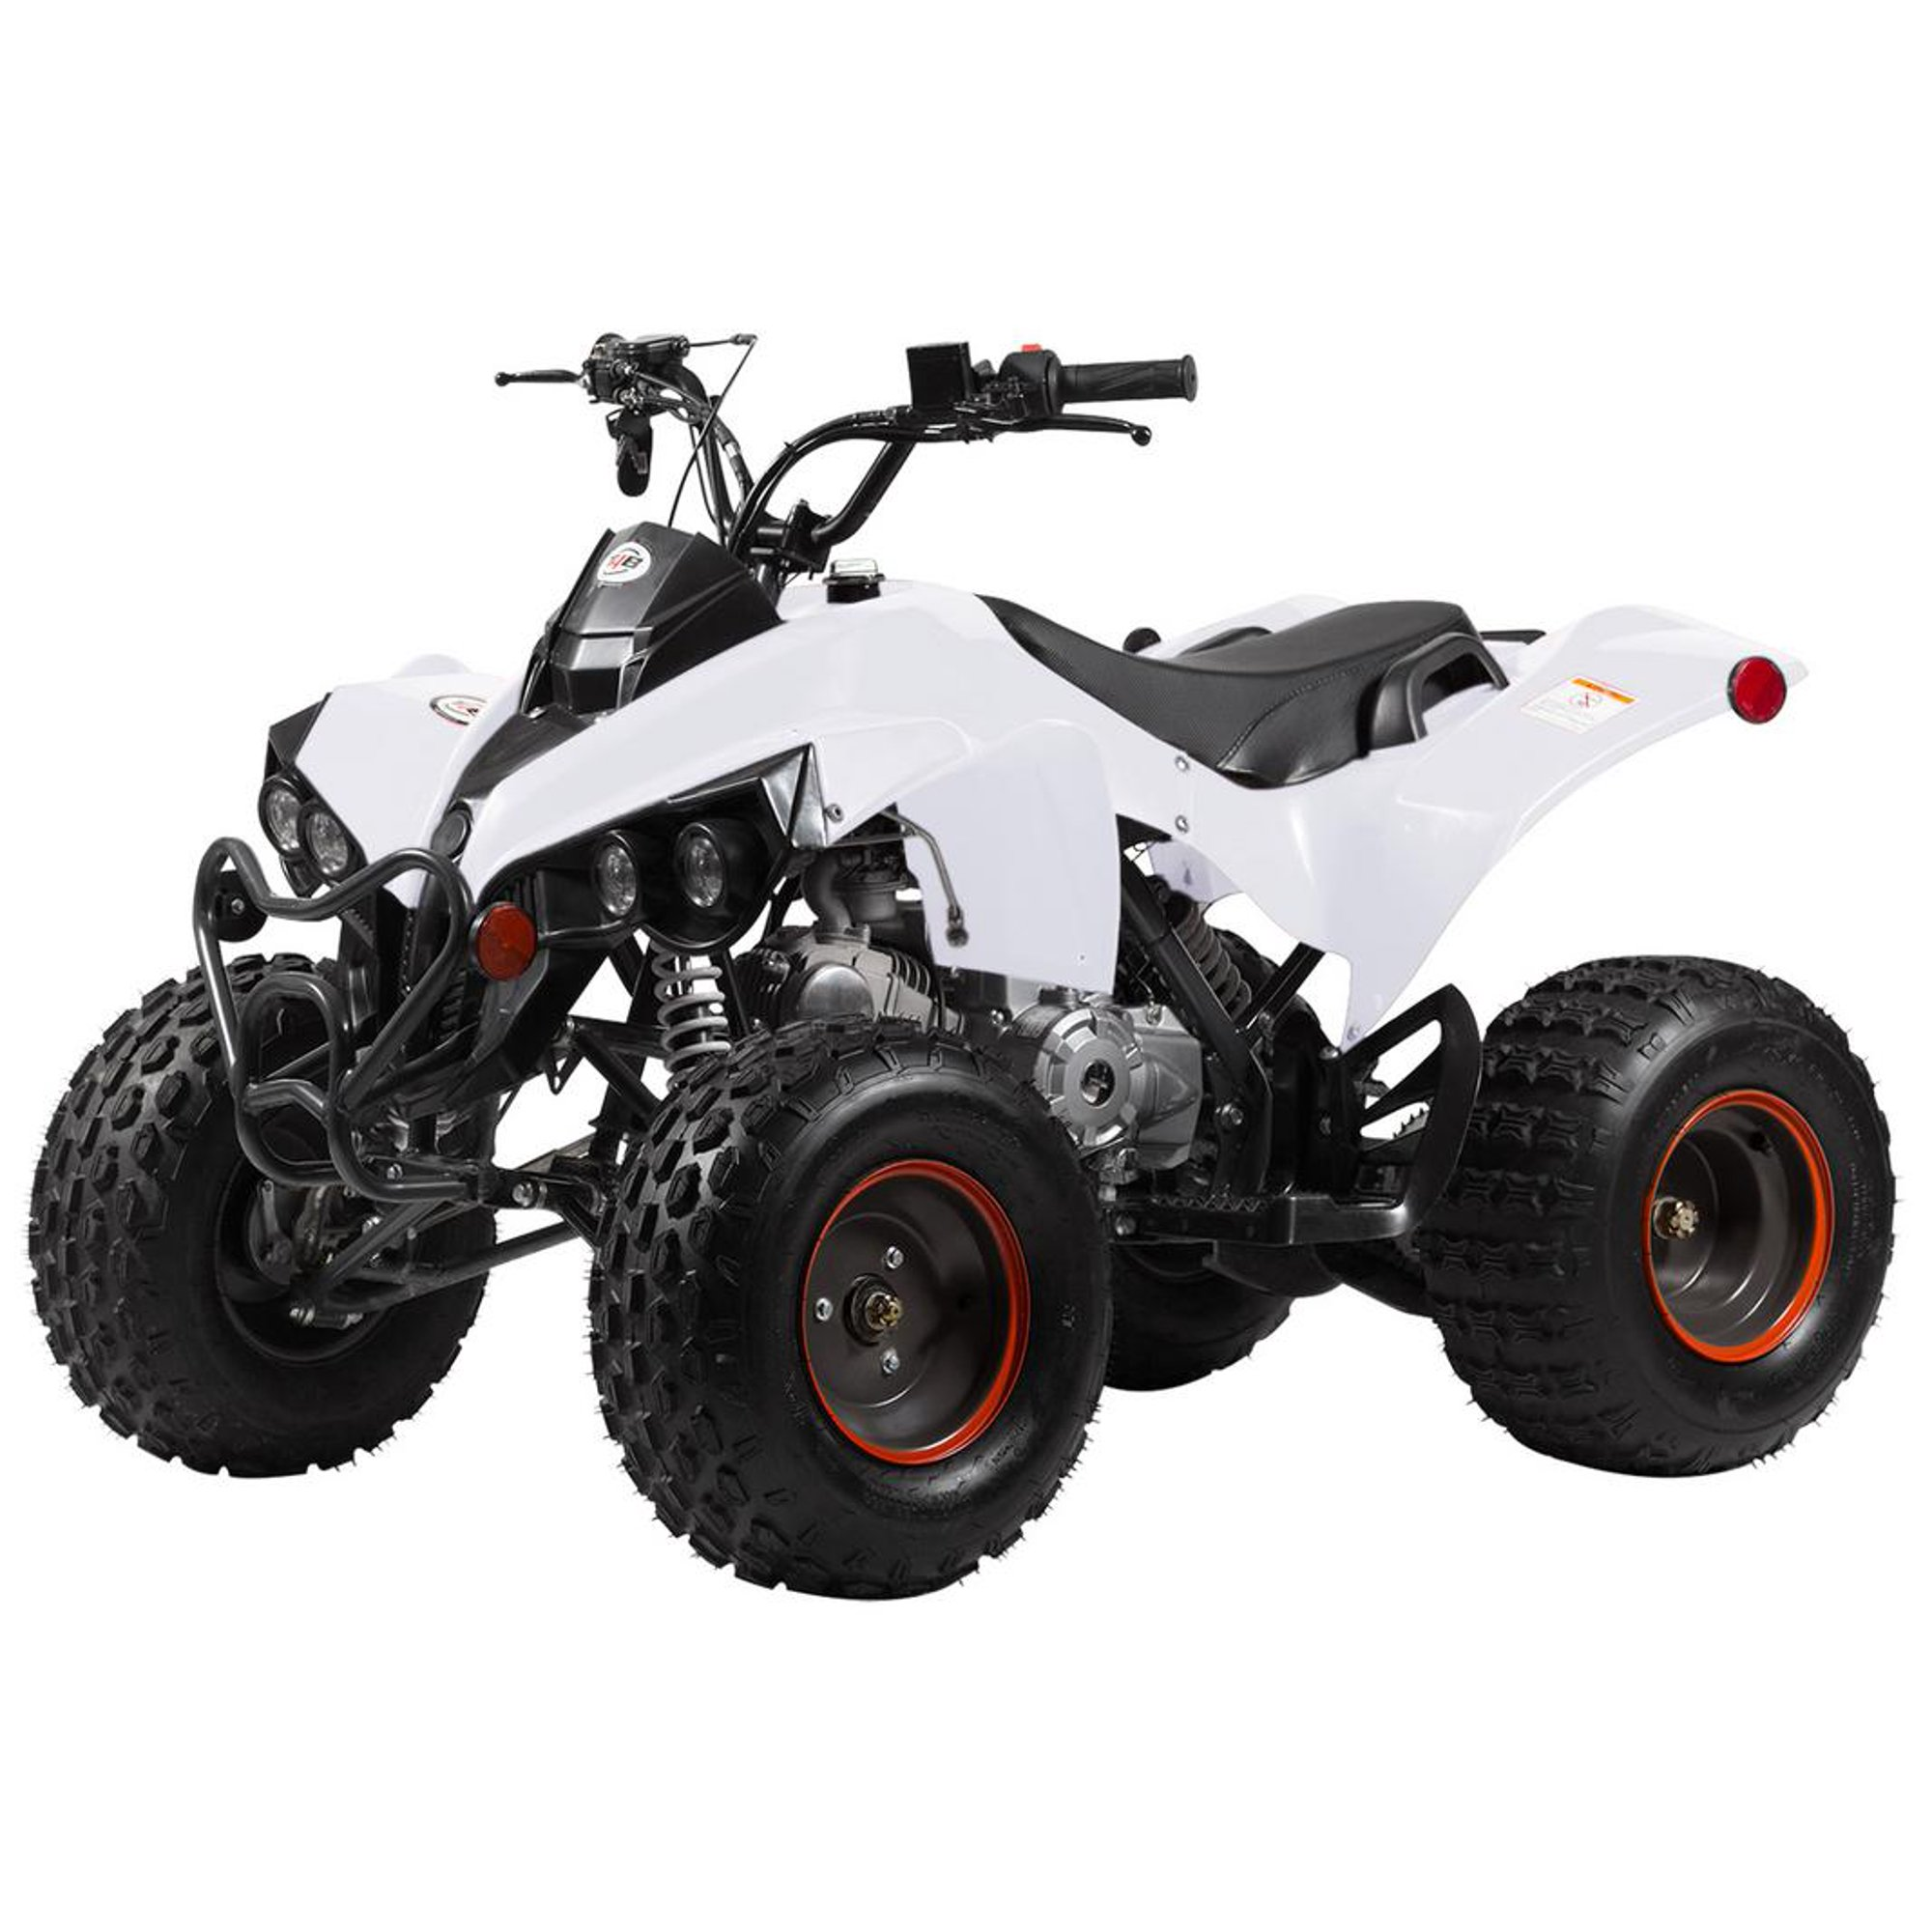 ee9a632f09a T4B T2 REBEL ATV 125cc KIDS Dirt Quad Recreational Outdoors